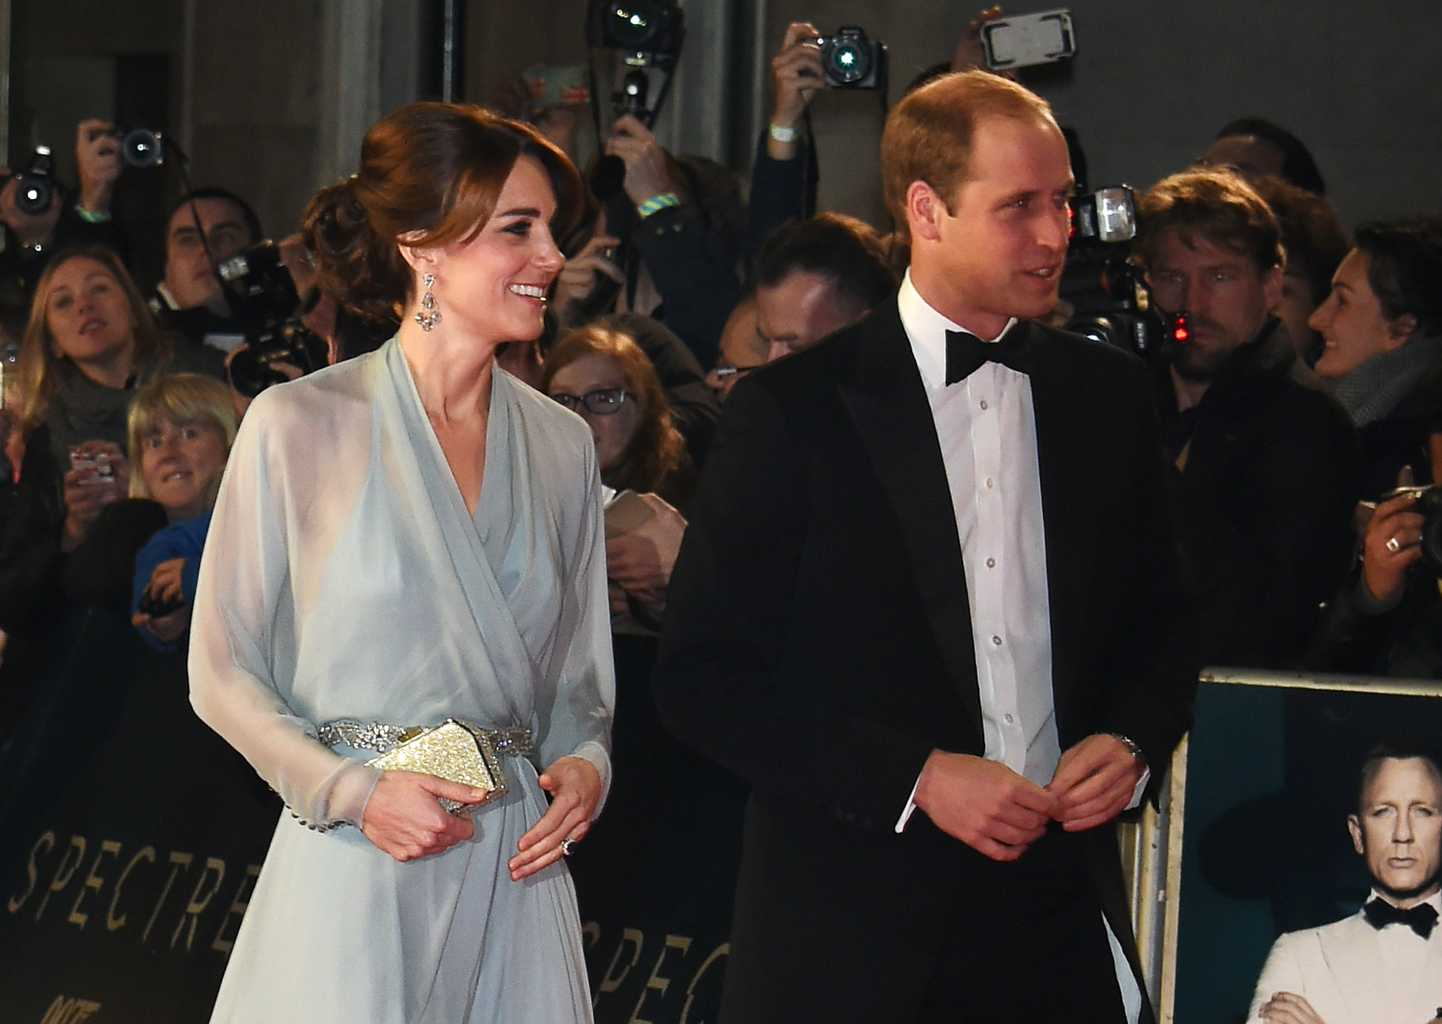 The Delevingne Dressing The Duchess! Kate Middleton Takes Style ... c3f6d07d0